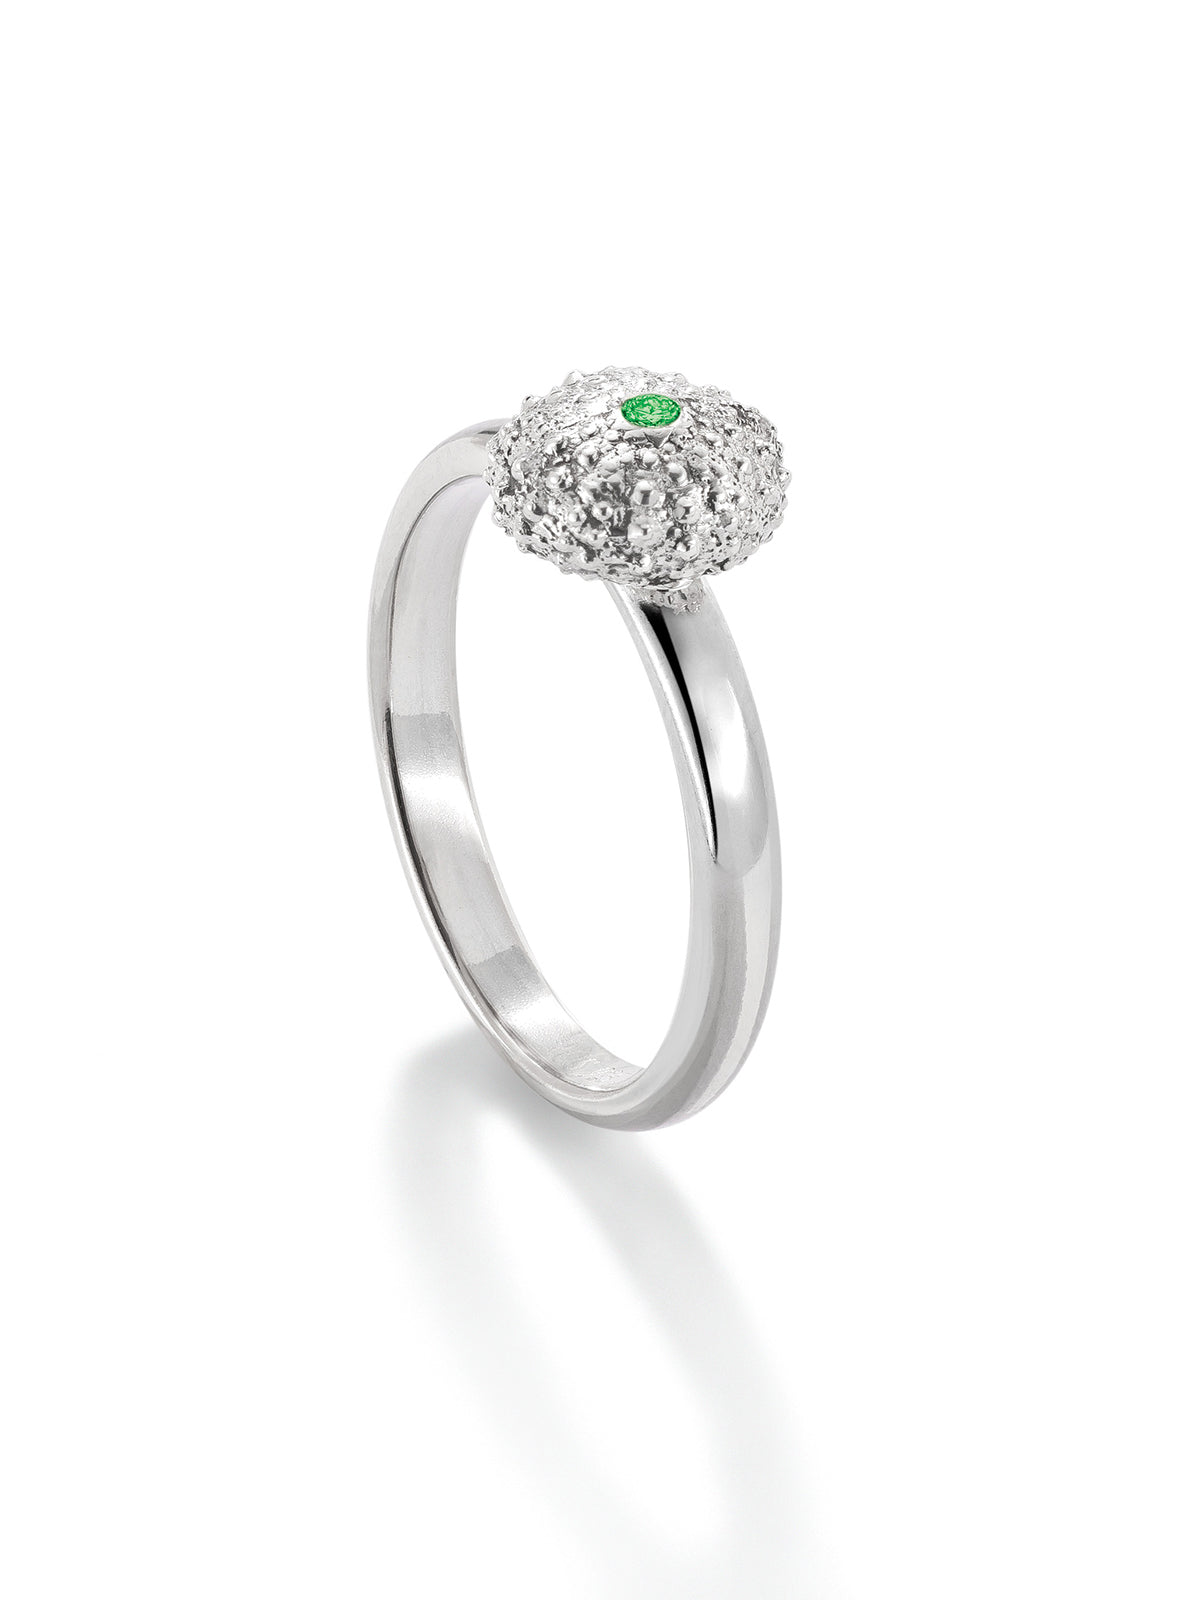 Sea Urchin Petite Ring with Tsavorite Garnet